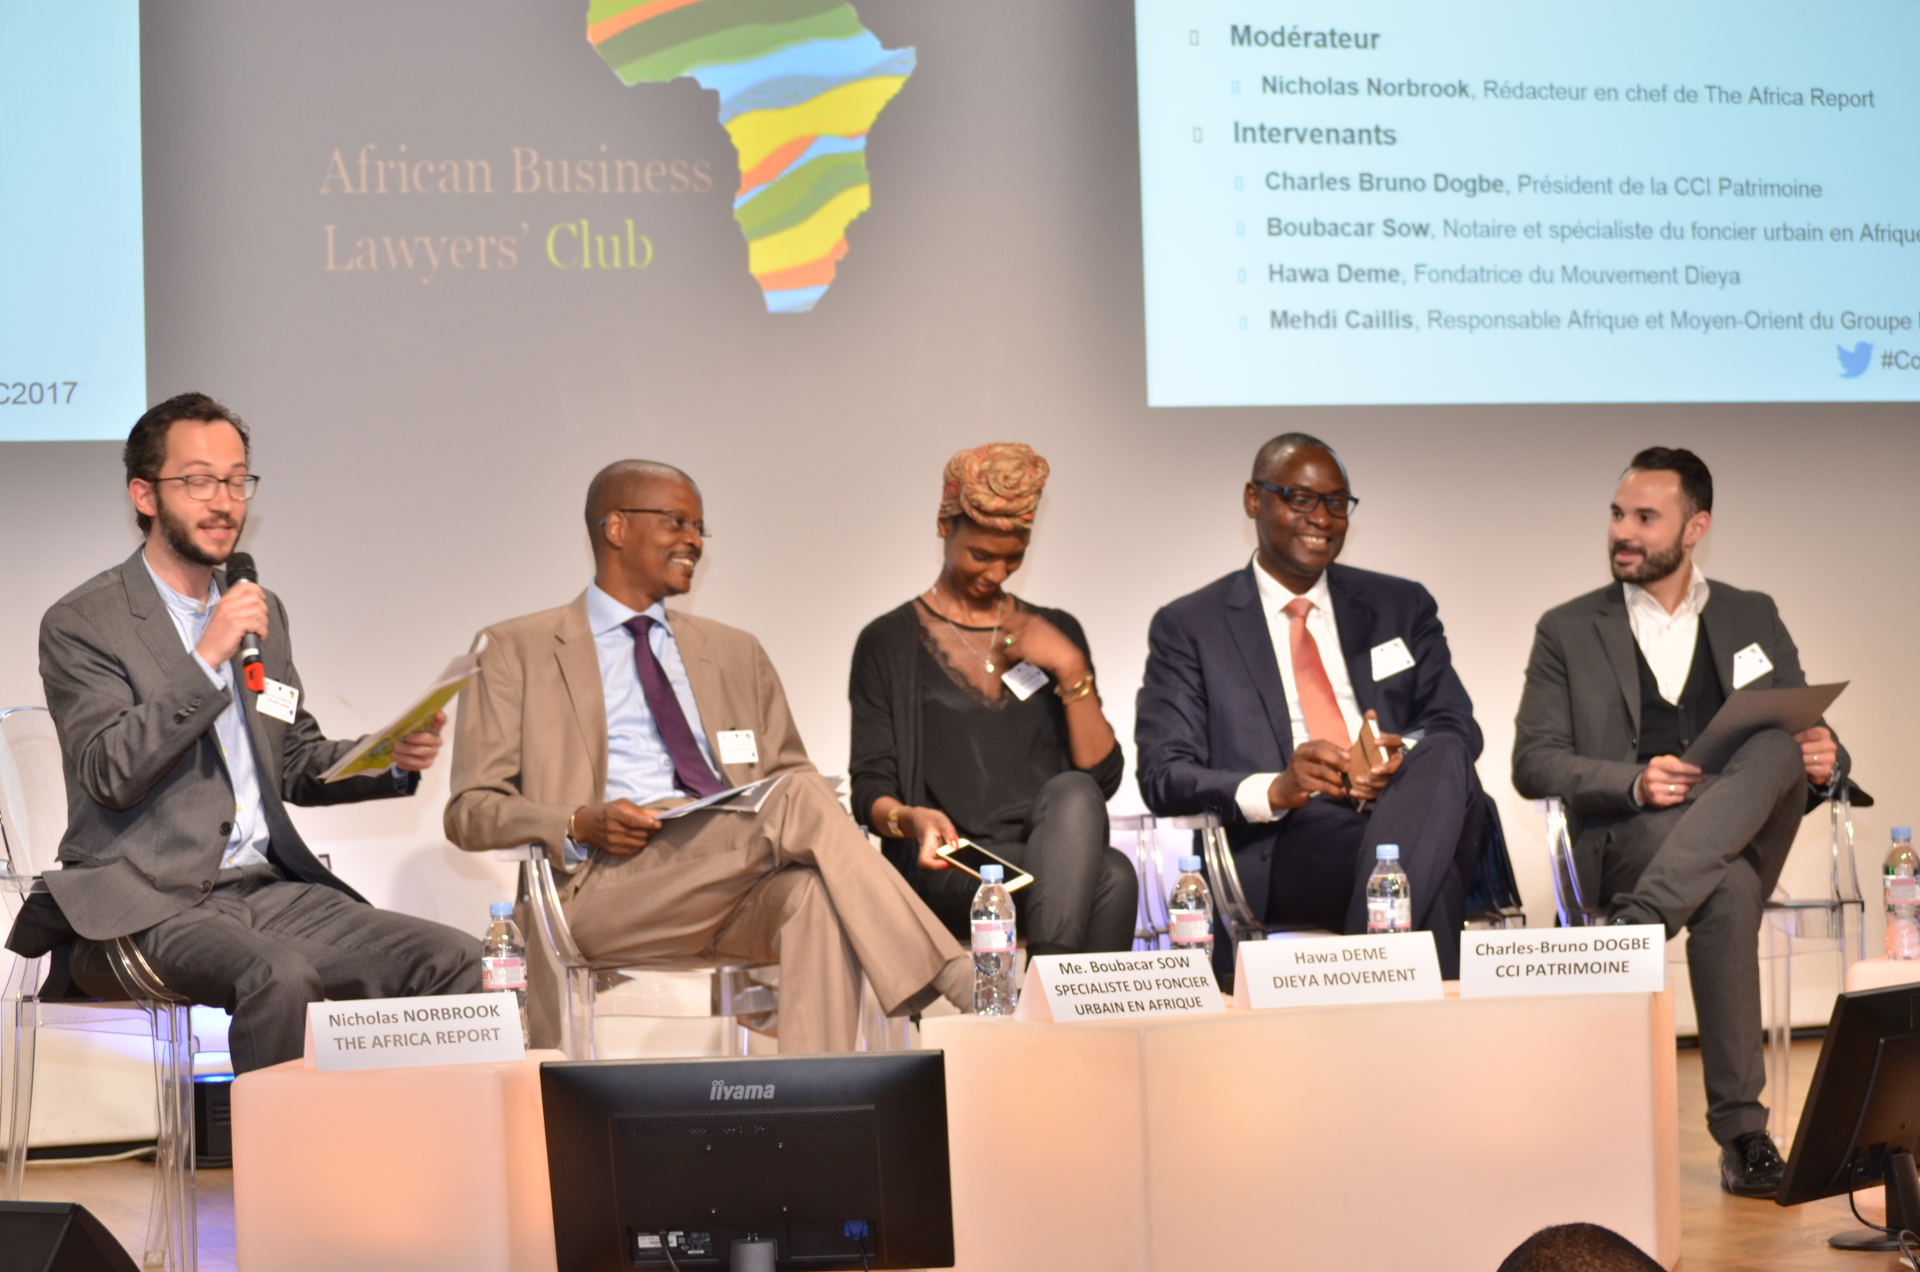 African business lawyer club